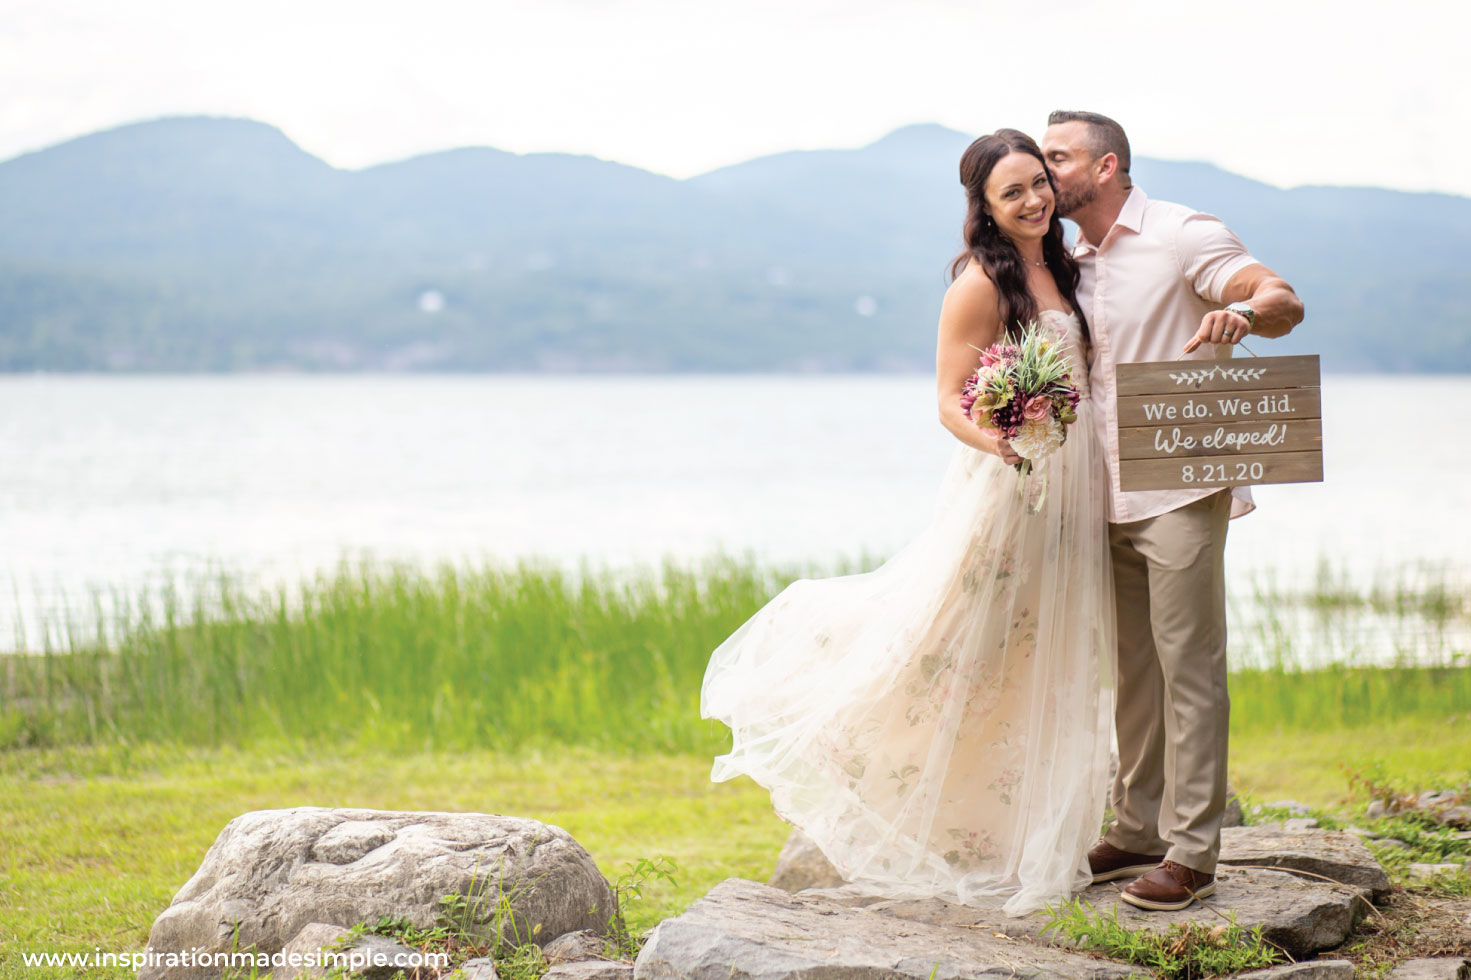 We eloped with a small lake side wedding!